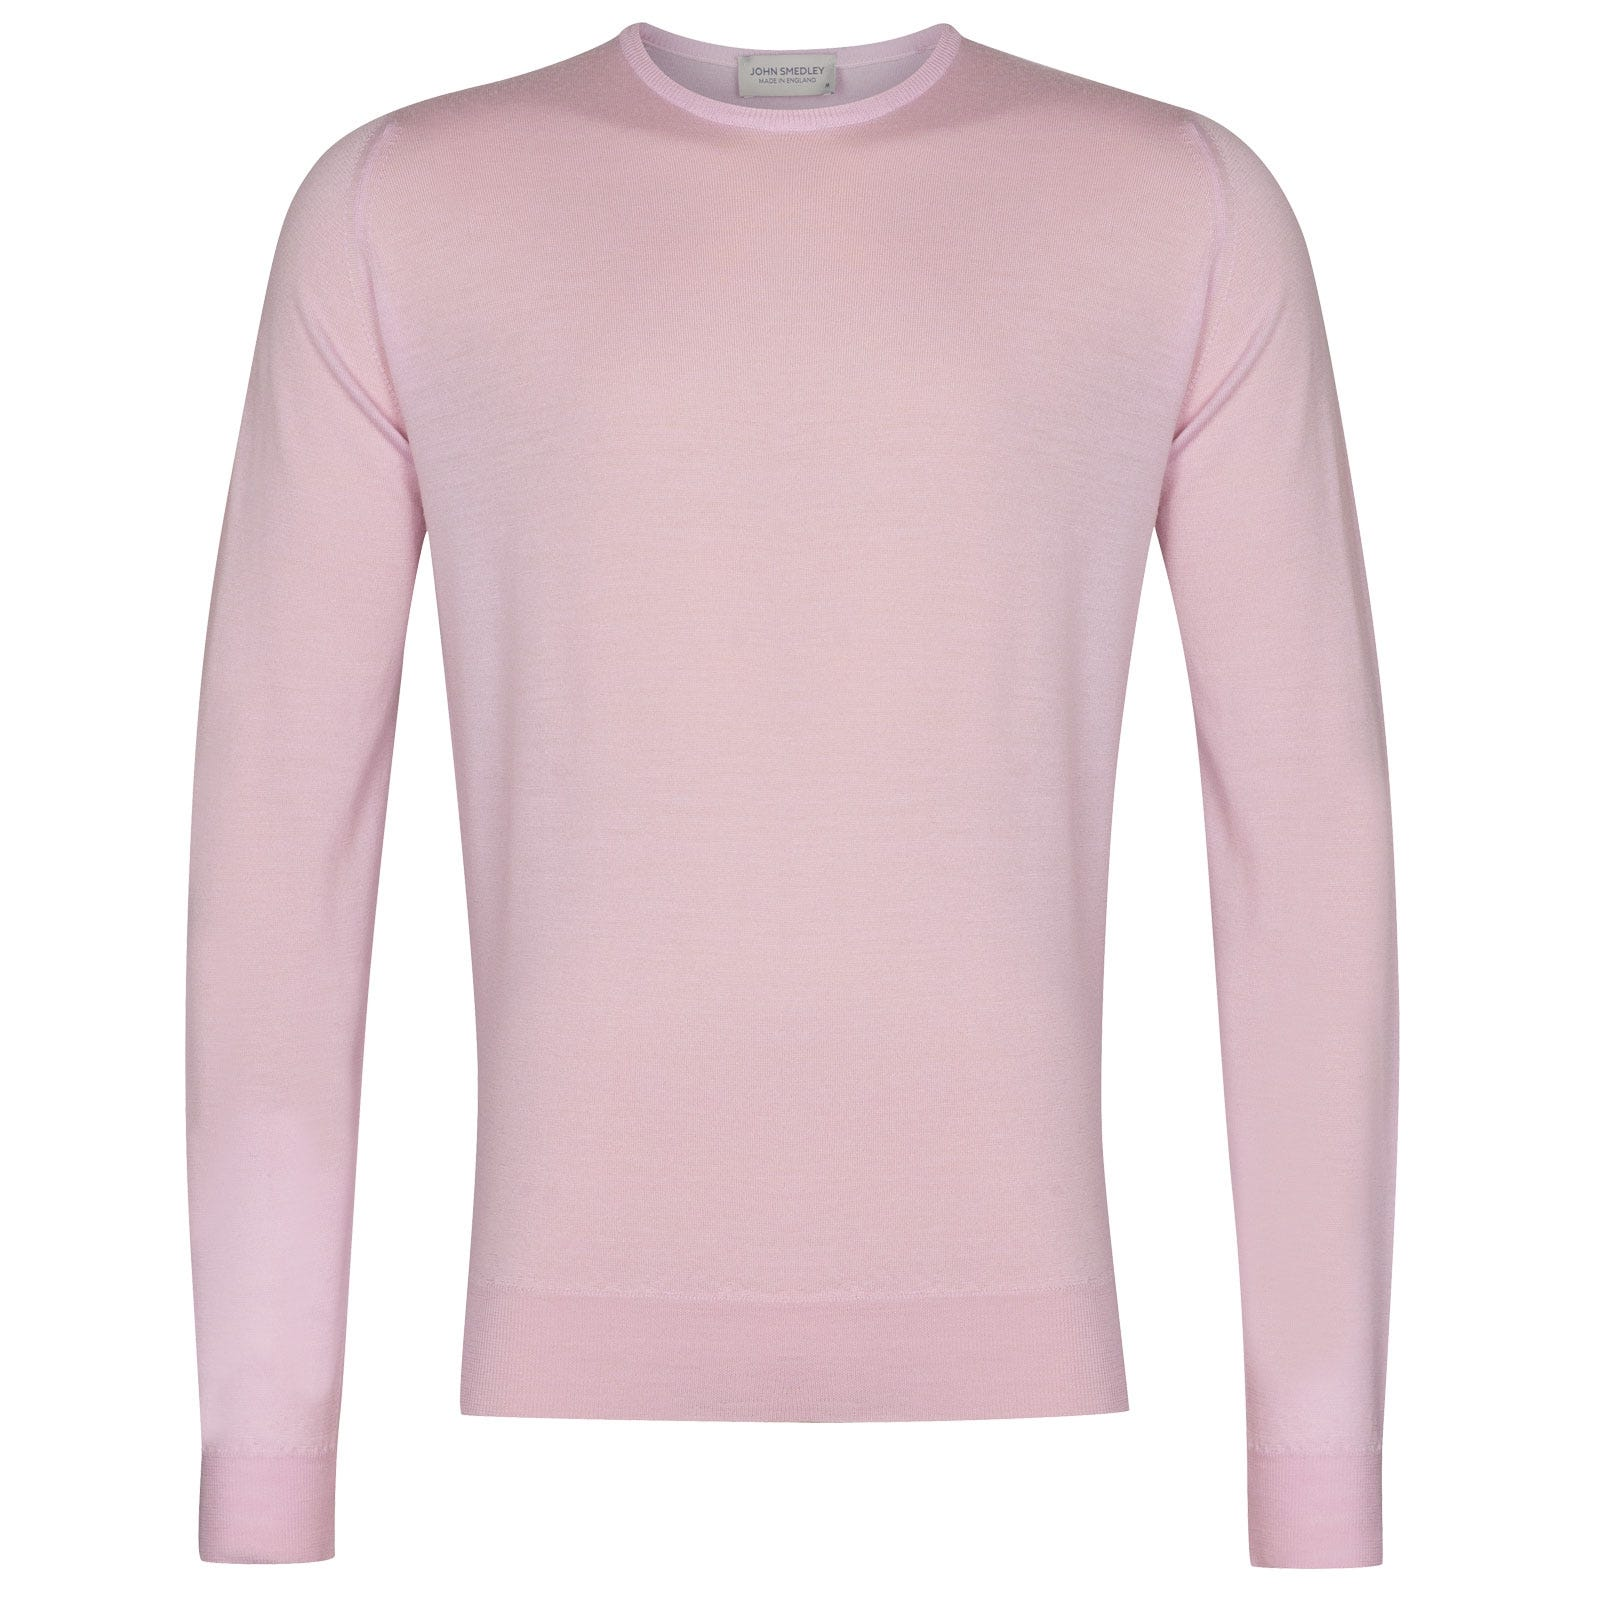 John Smedley Lundy in Pink Blossom Pullover-SML